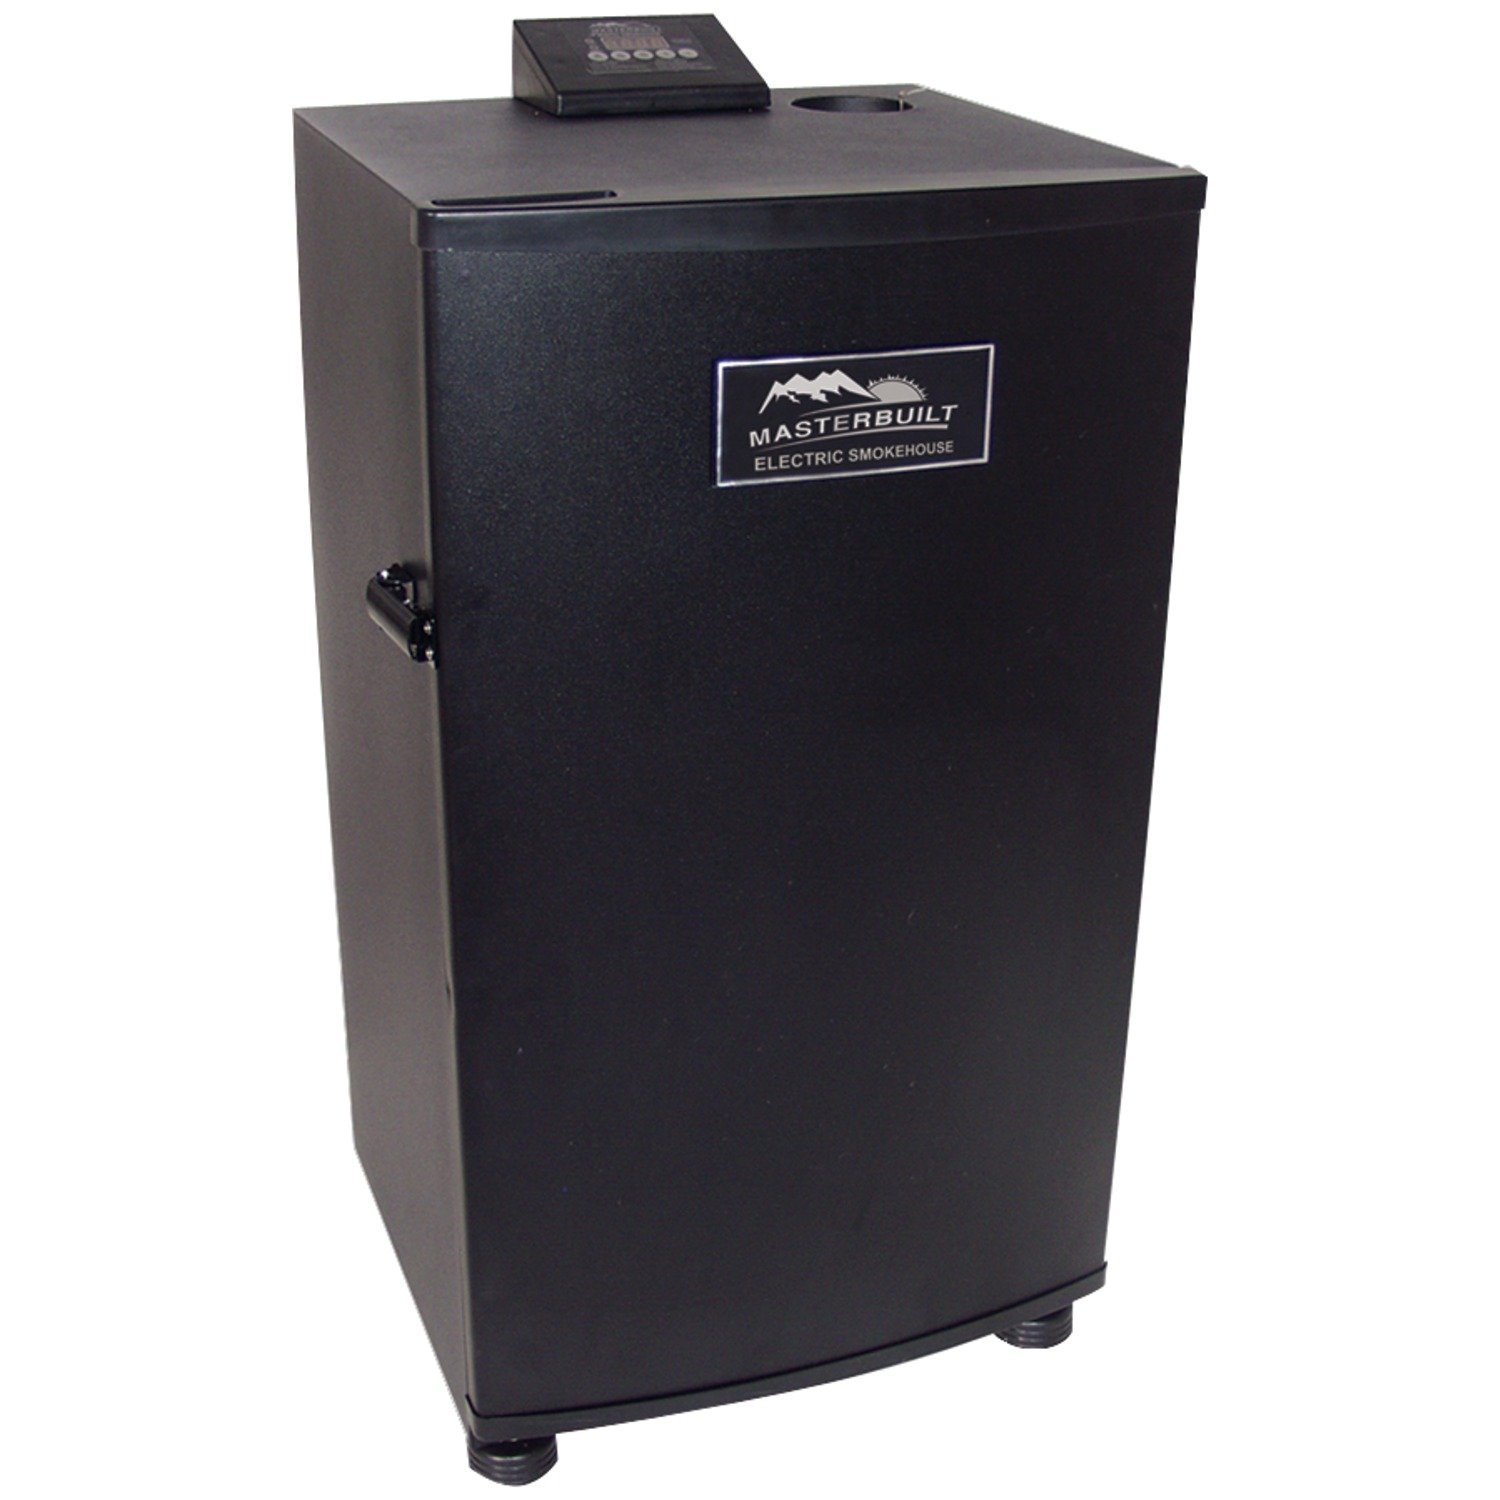 The Masterbuilt 20070910 is an absolute bargain at under $180 and easily one of the best electric smokers on this list.